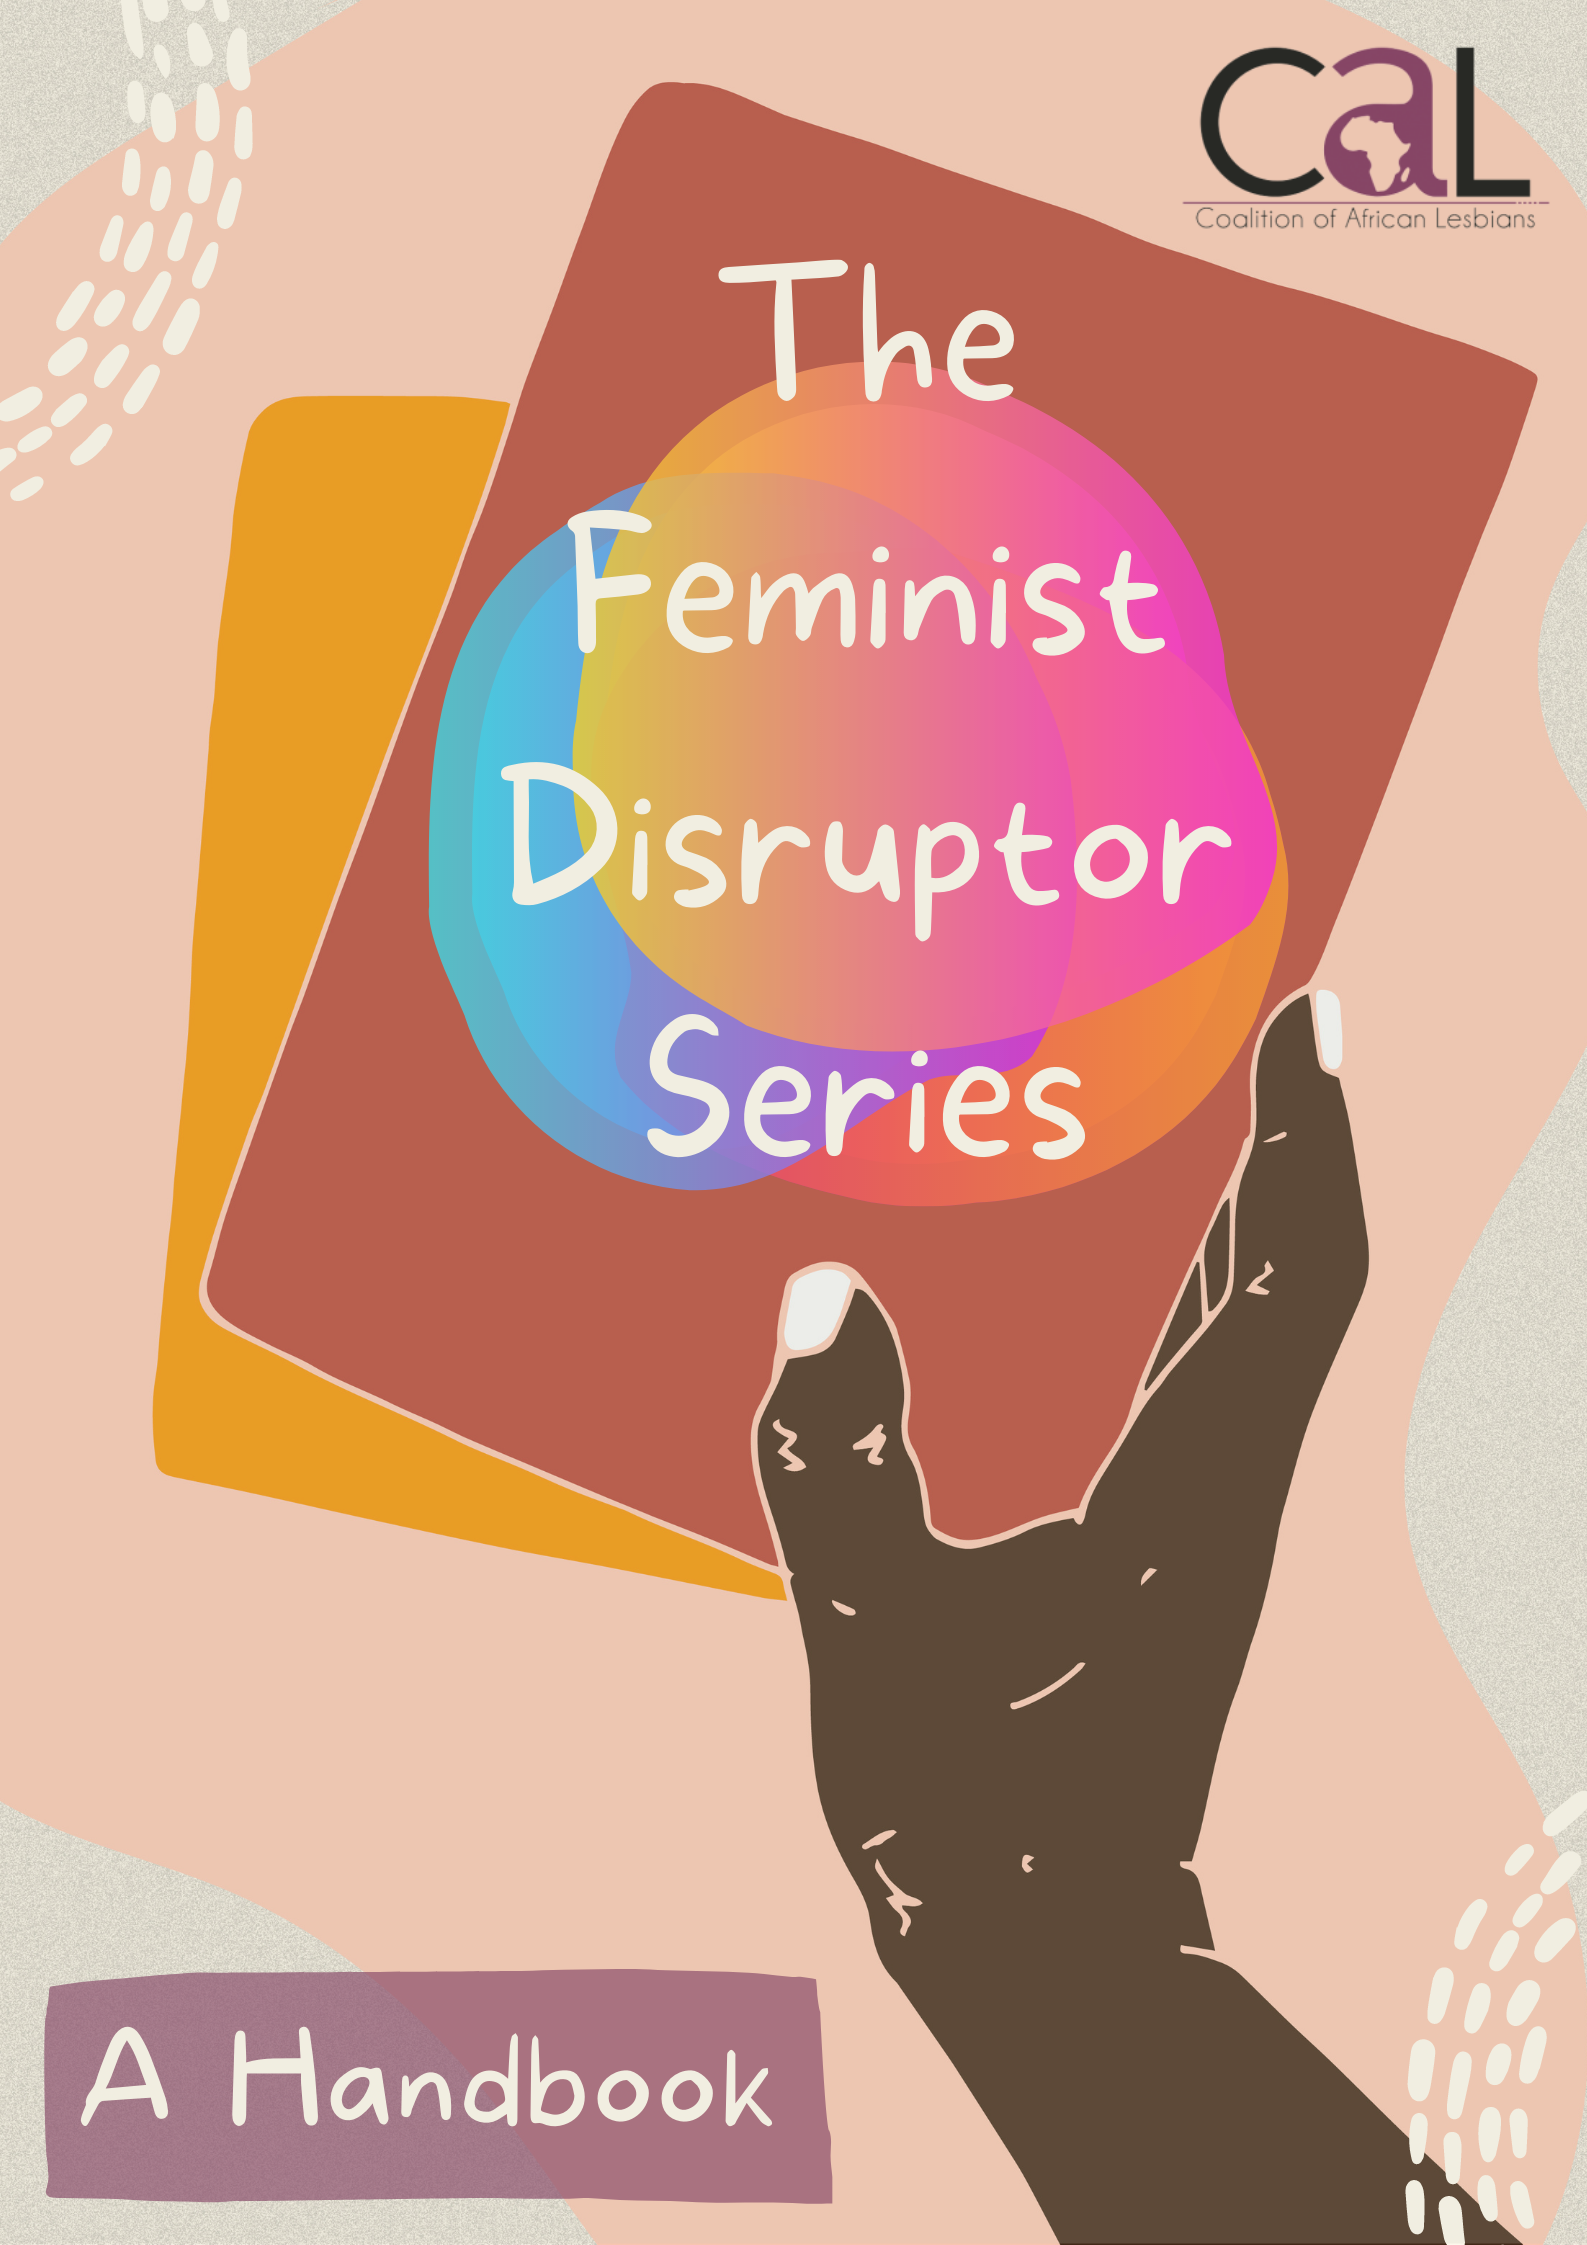 The Feminist Disruptor Series: A Handbook